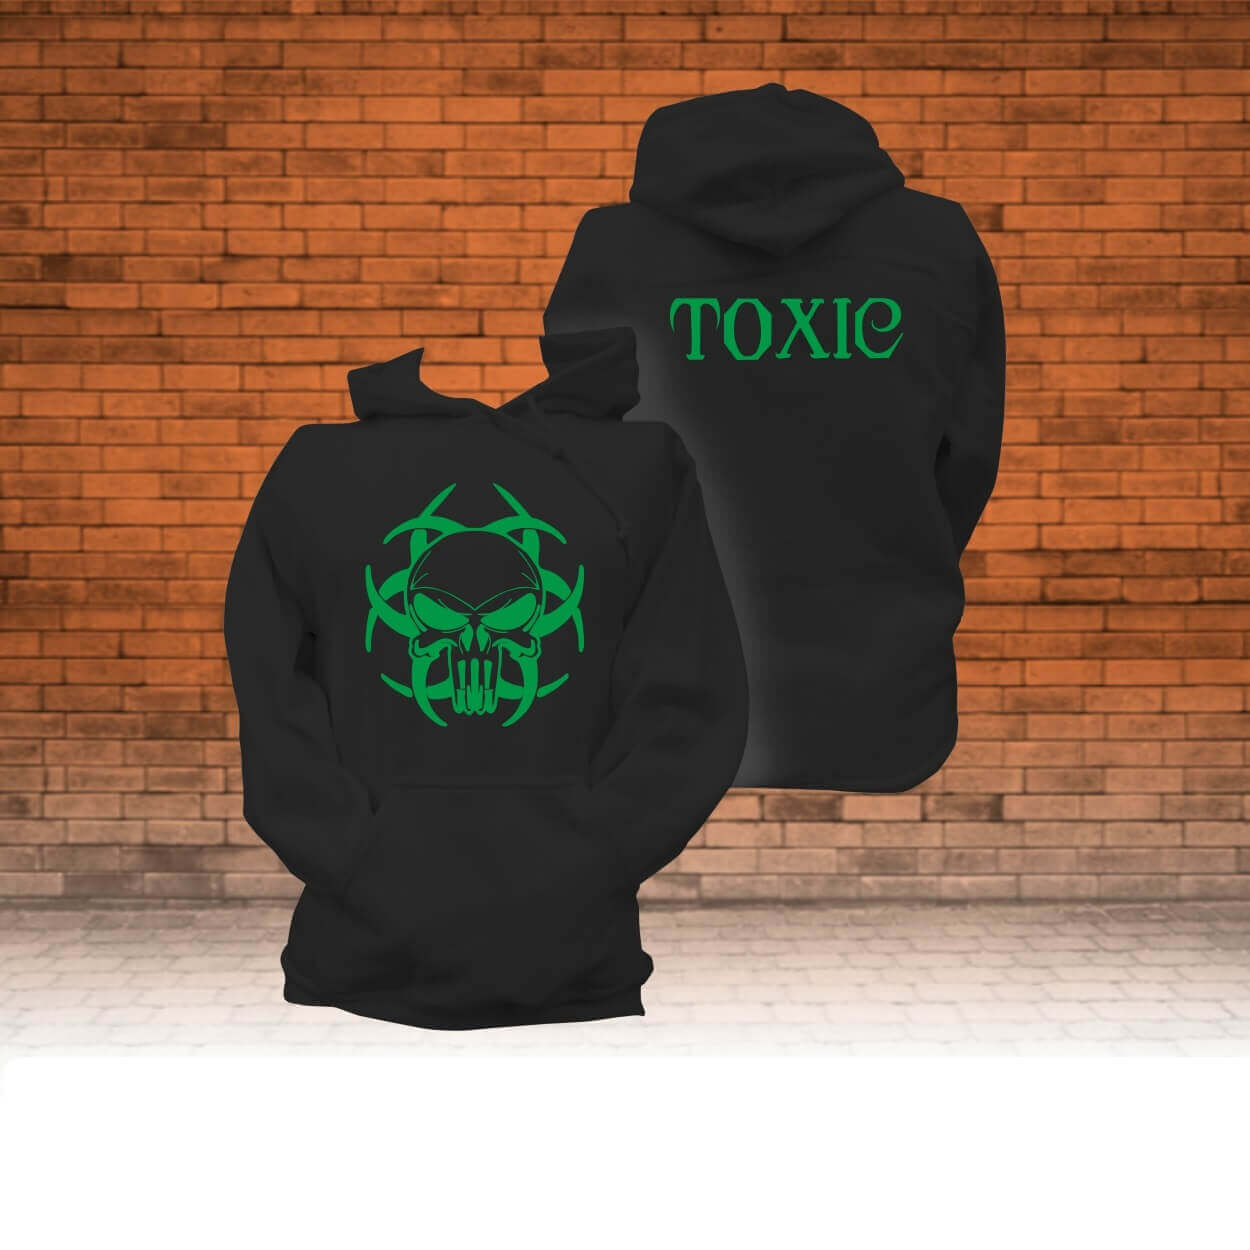 tribal-top-sxedia-me-to-sxedio mou-punisher-toxic